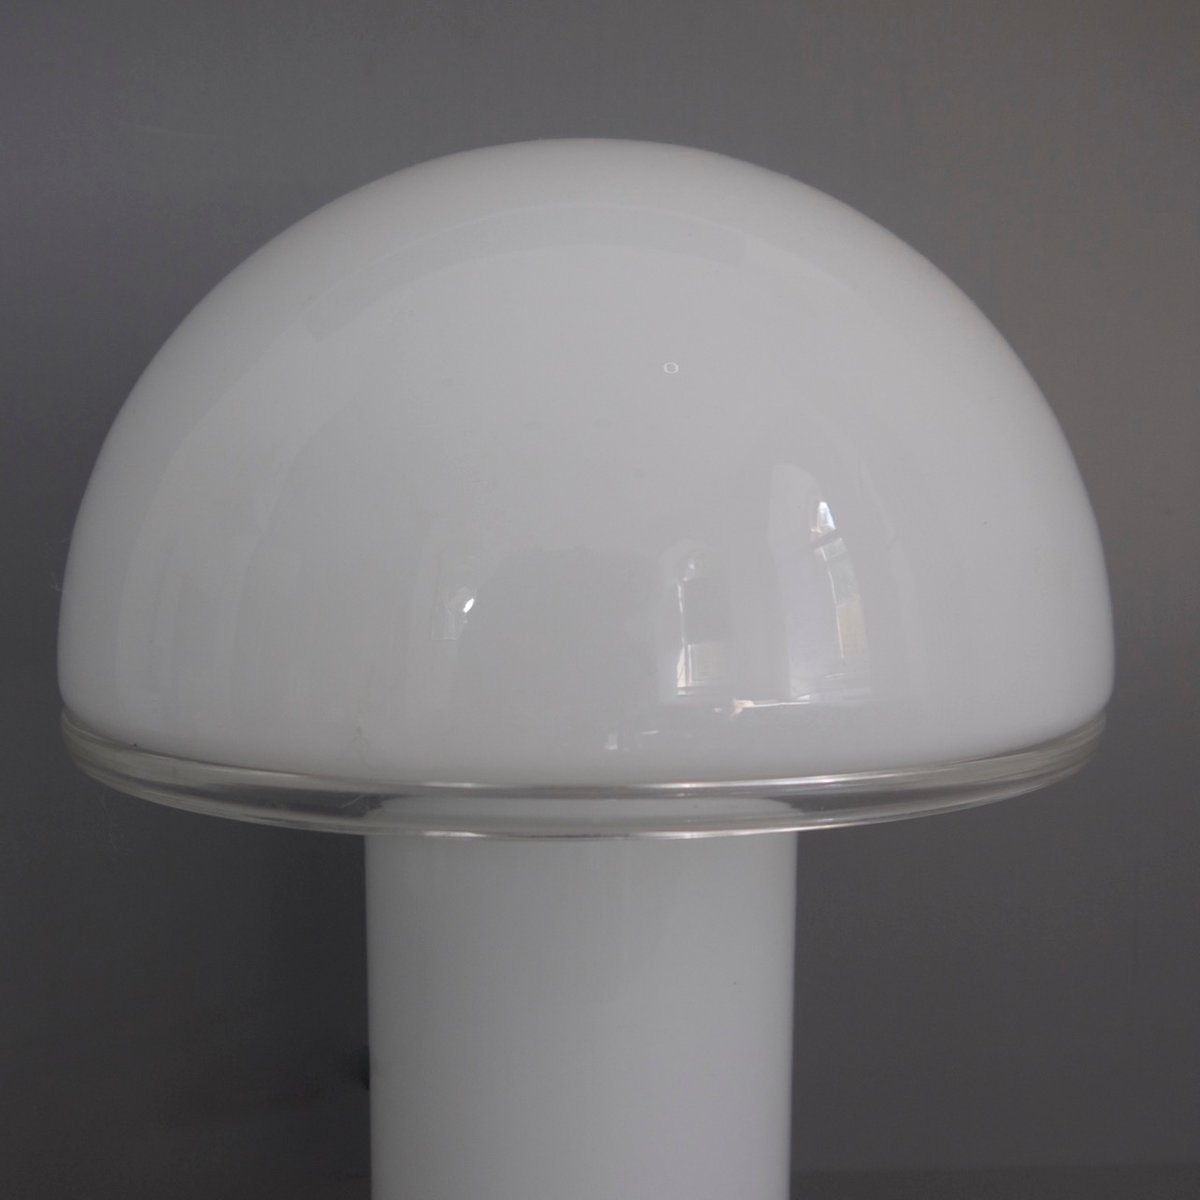 Onfale Mushroom Table Lamp By Luciano Vistosi For Artemide 1978 For